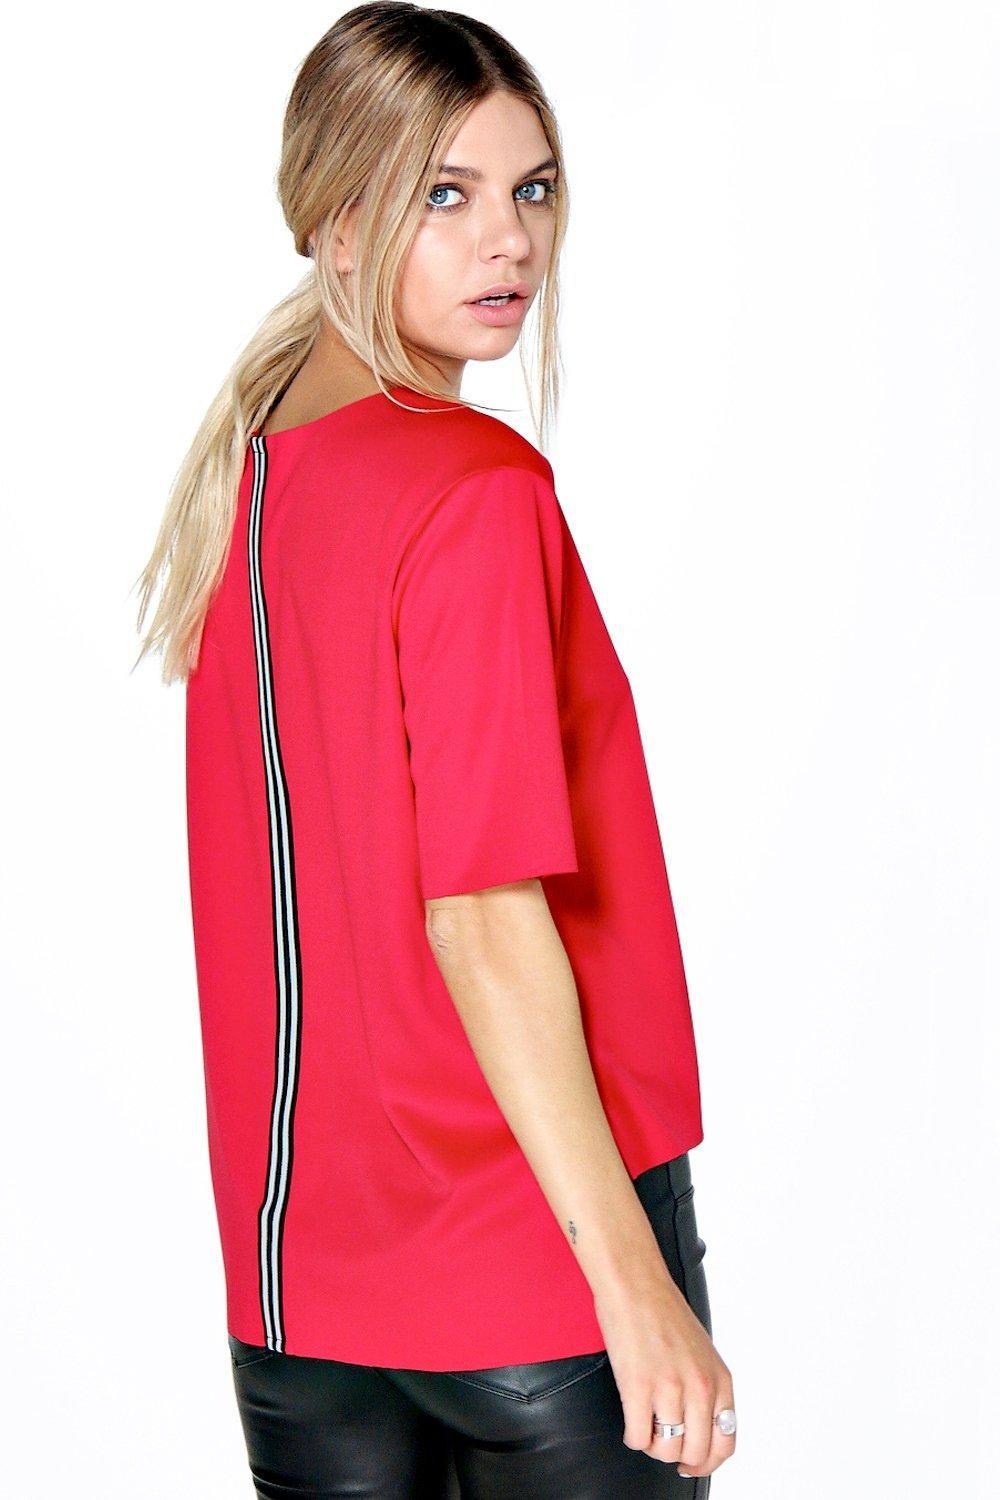 Back Stripe Scuba Shell Top Red - neckline: round neck; pattern: plain; predominant colour: true red; occasions: casual, creative work; length: standard; style: top; fibres: polyester/polyamide - stretch; fit: straight cut; back detail: longer hem at back than at front; sleeve length: short sleeve; sleeve style: standard; pattern type: fabric; texture group: other - light to midweight; season: s/s 2016; wardrobe: highlight